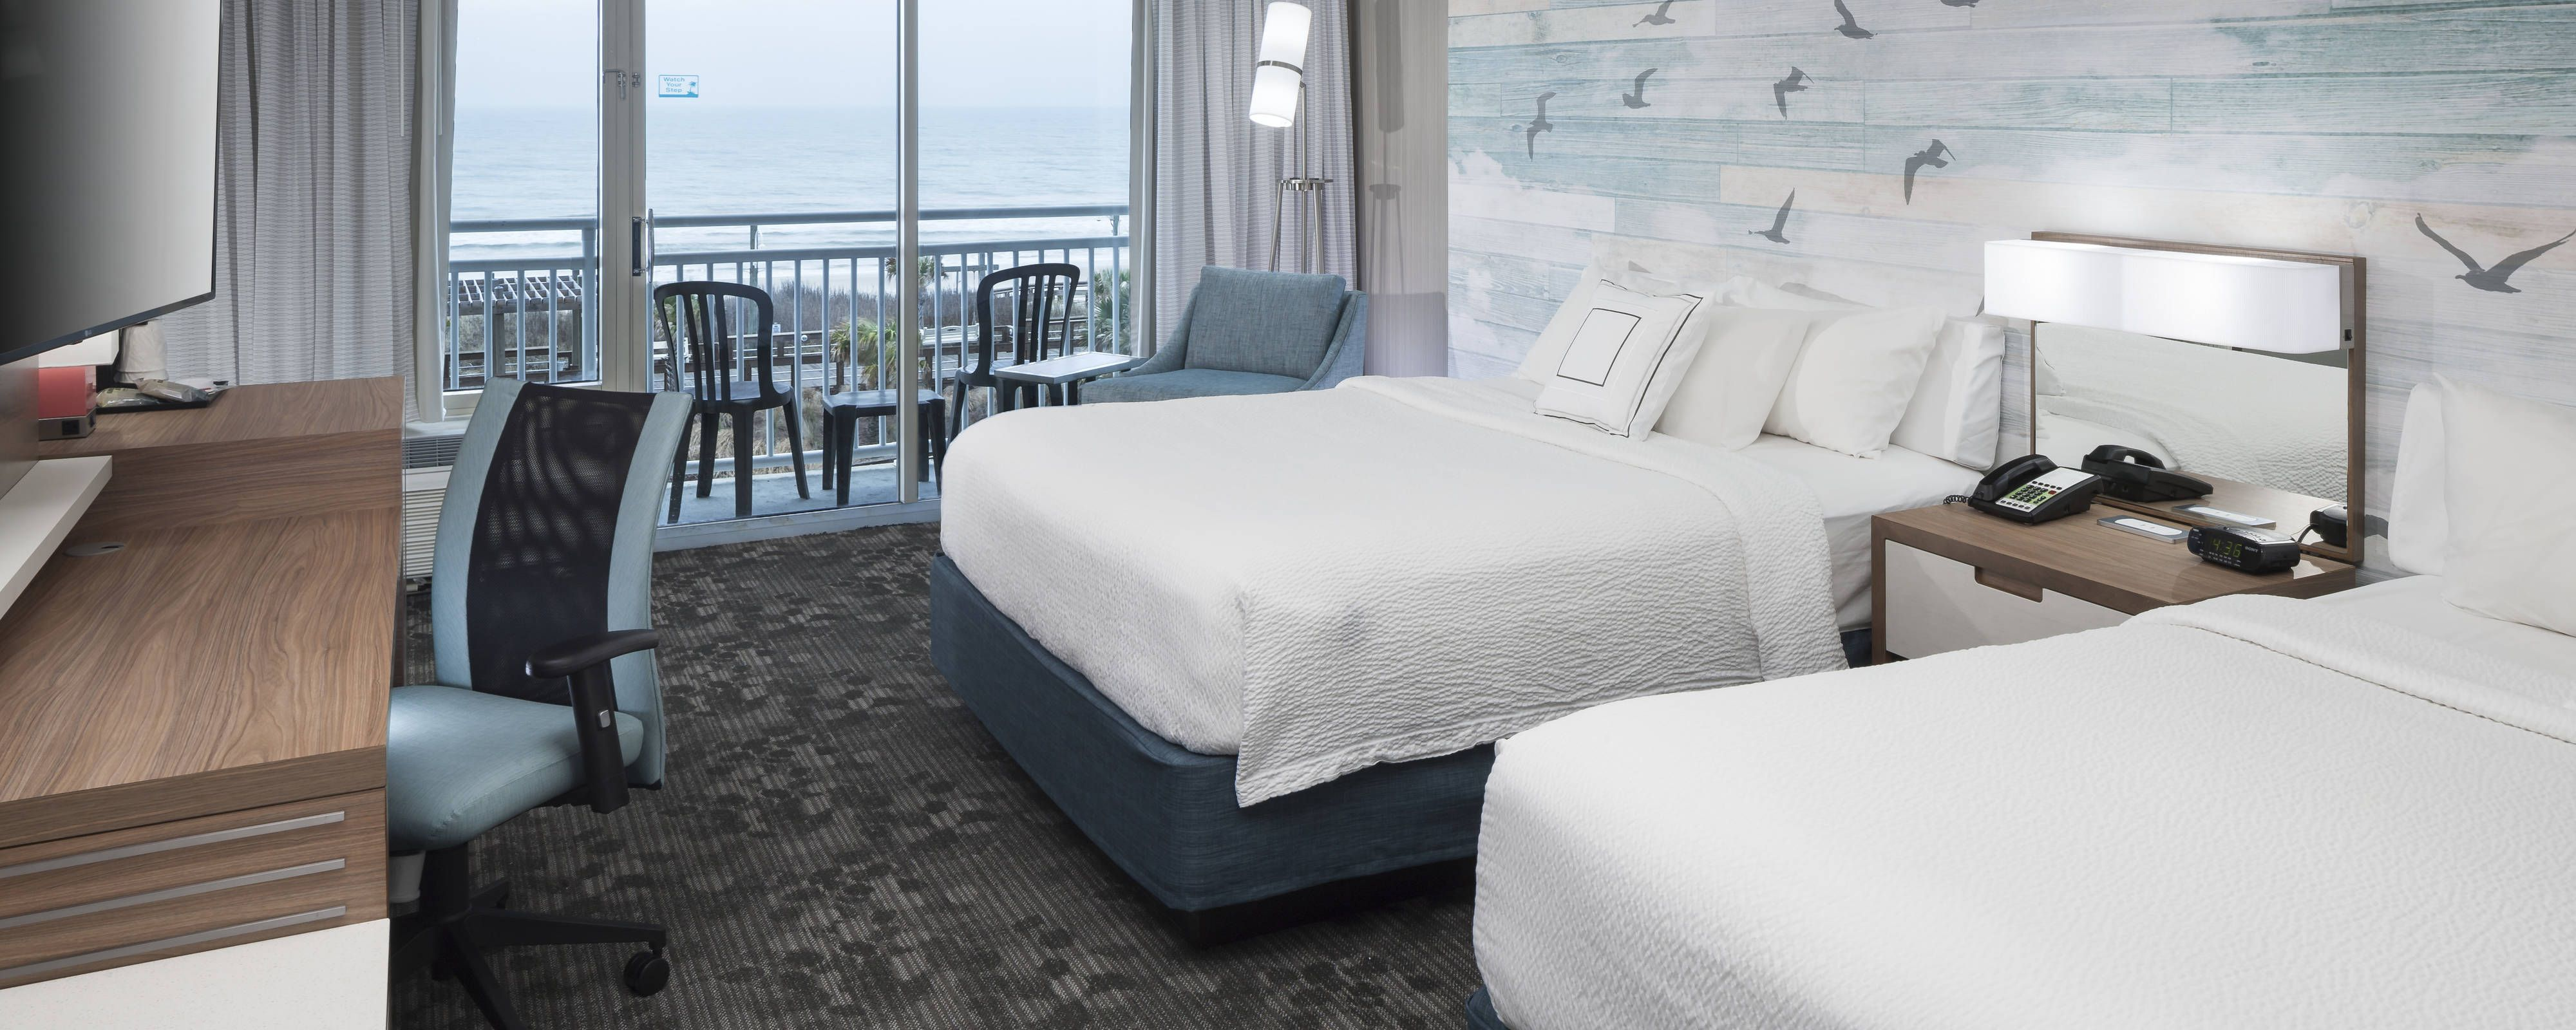 Looking For Beachfront Hotels In Carolina Beach Nc You Ll Love The Courtyard By Marriott Our Oceanfront Carolina Beach Hotel Is Steps Fr Carolina Beach Hotels Carolina Beach Beach Hotels